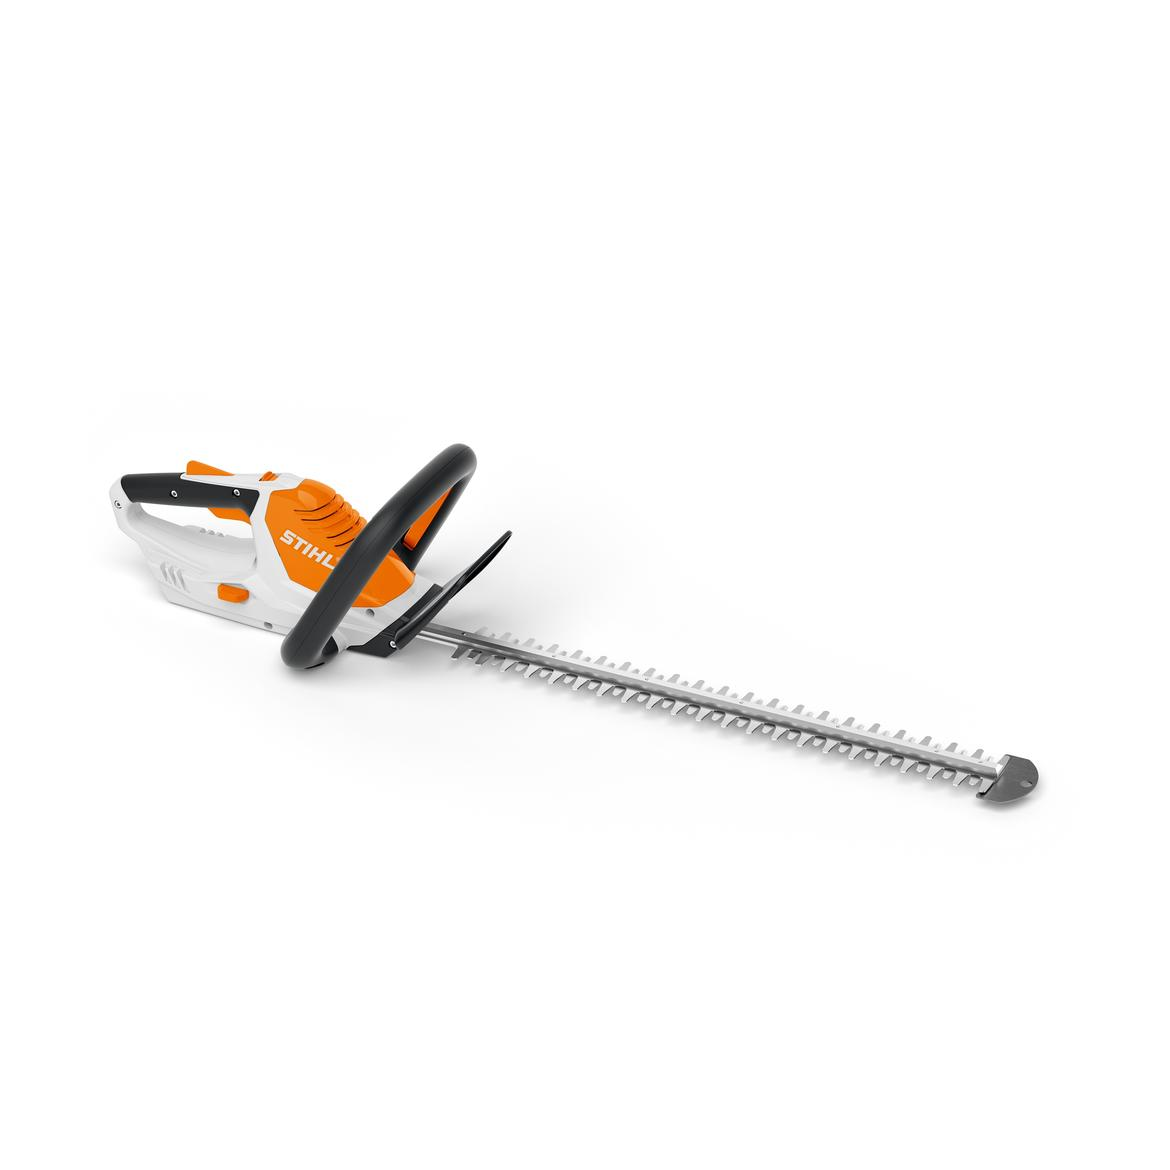 Stihl hsa 45 cordless hedge trimmer radmore tucker for Gardening tools and accessories